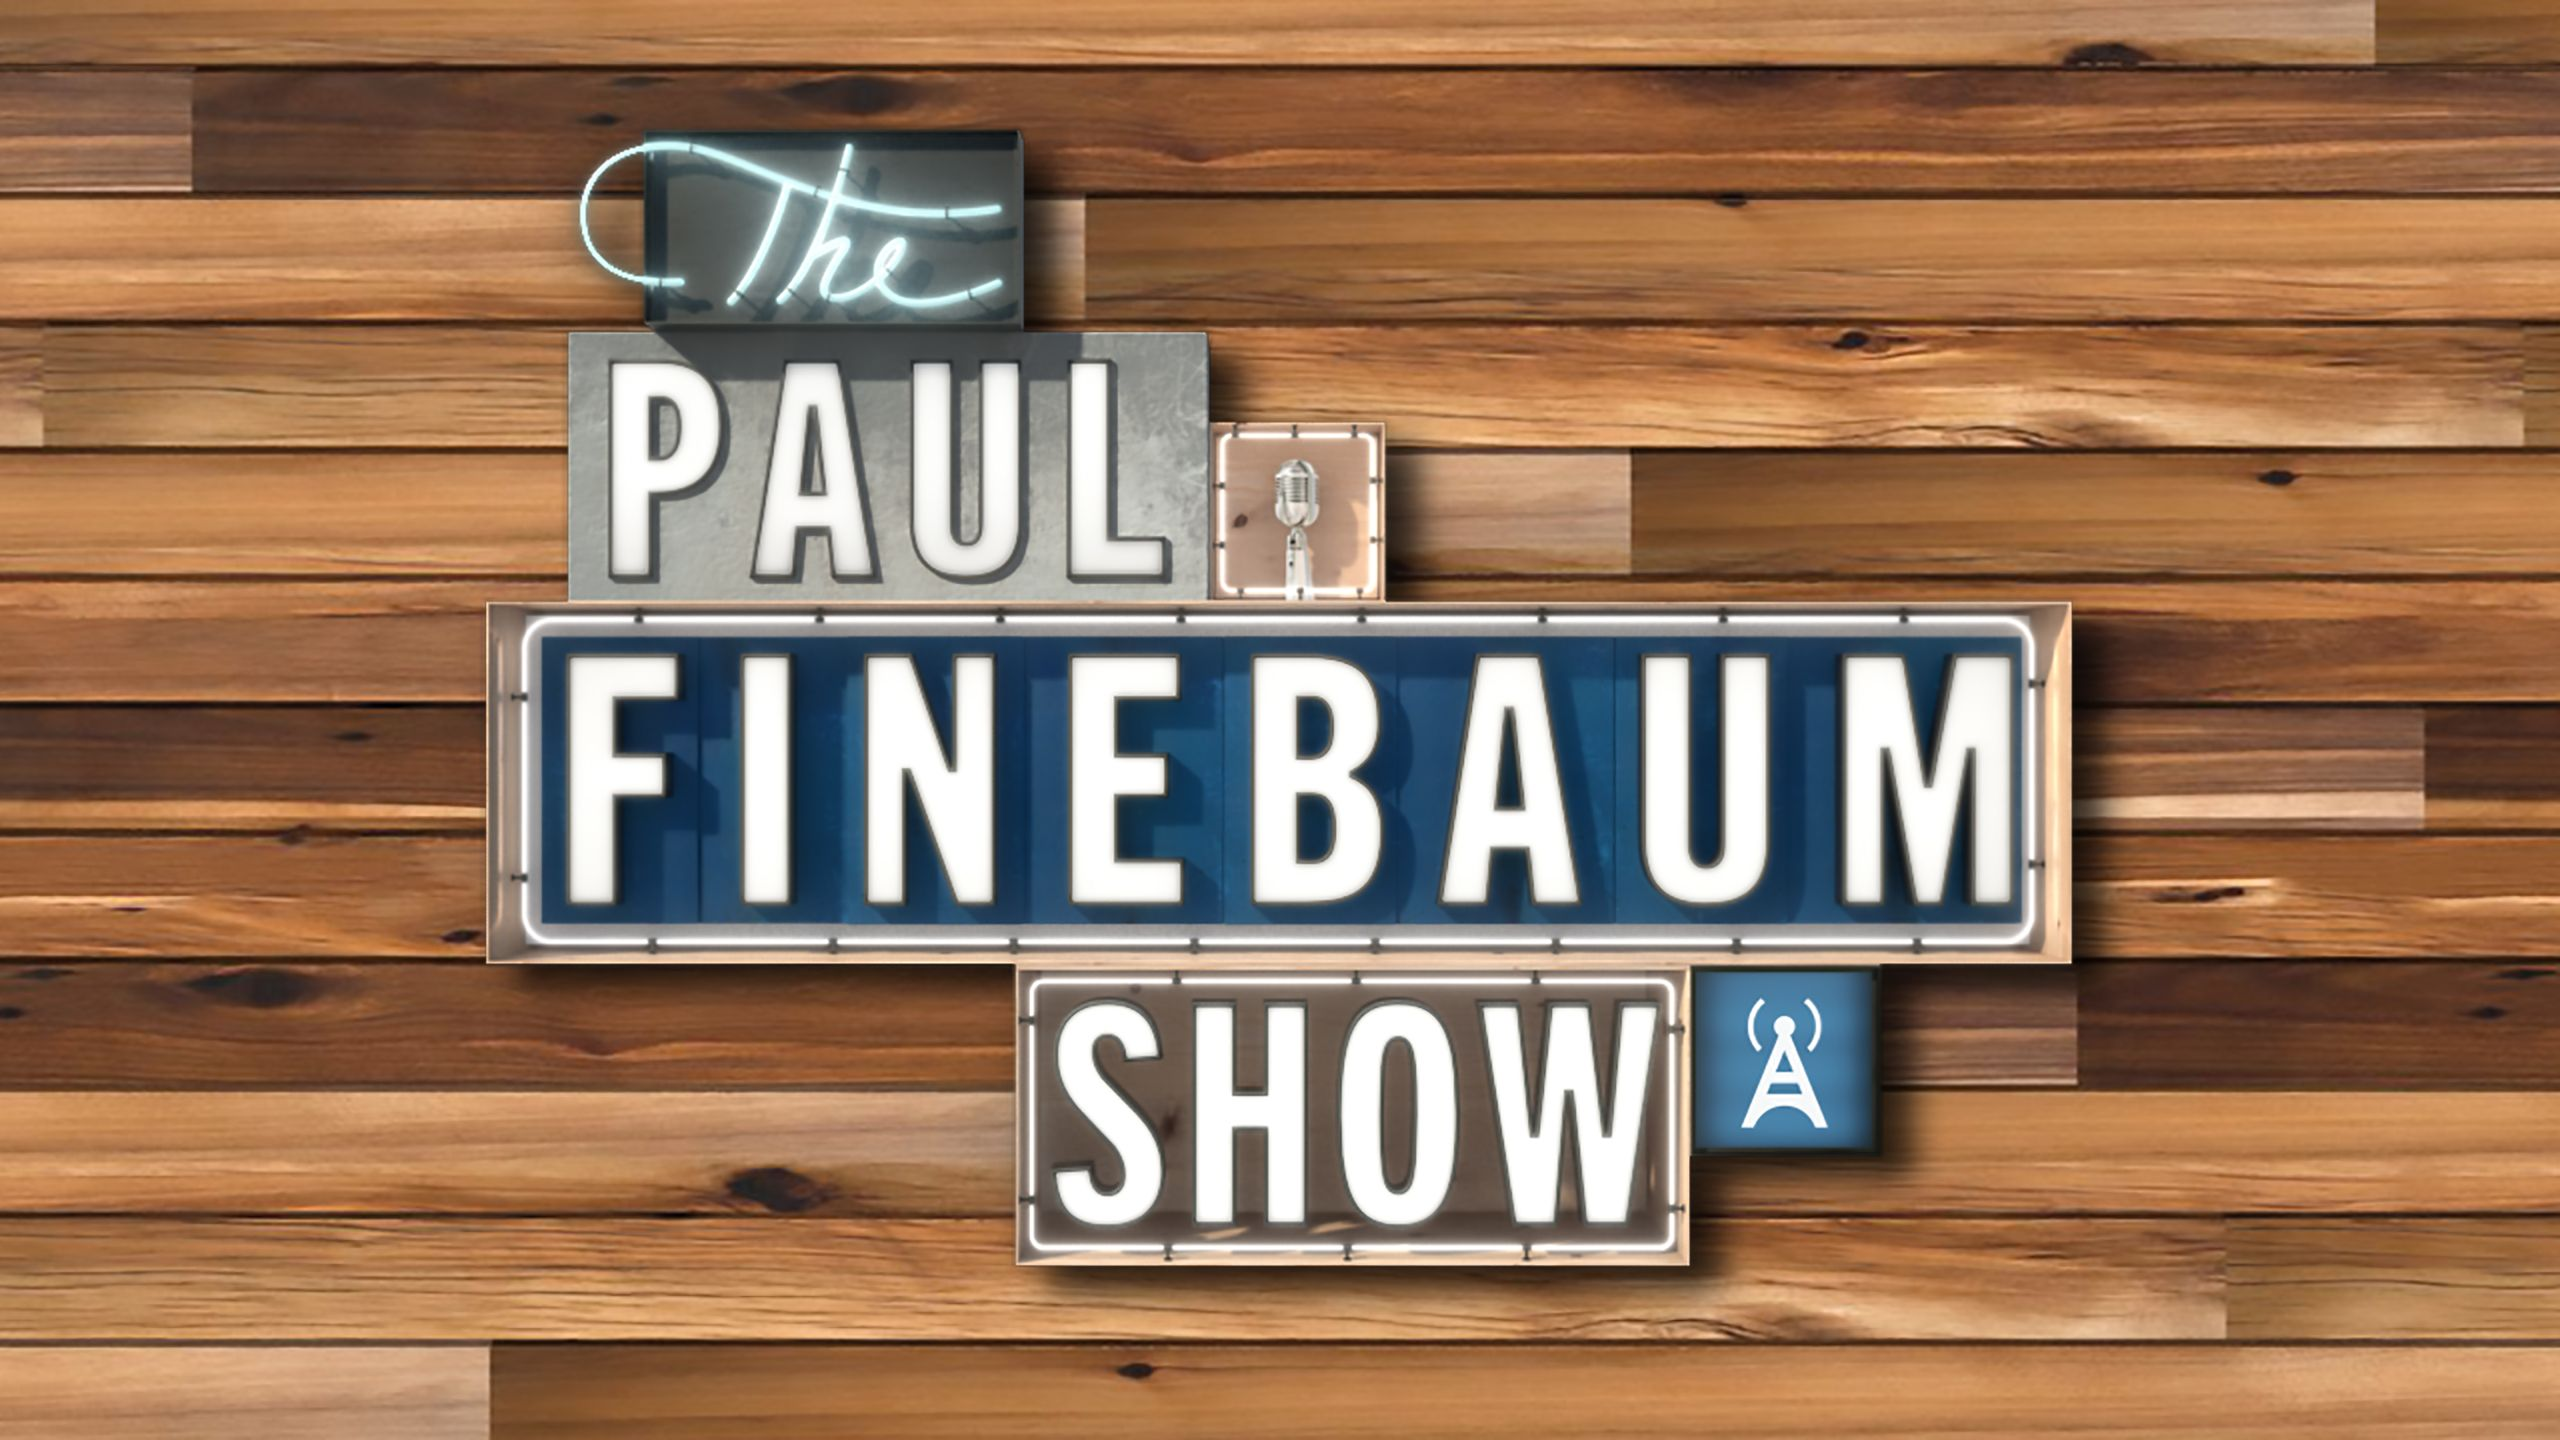 Mon, 8/13 - The Paul Finebaum Show